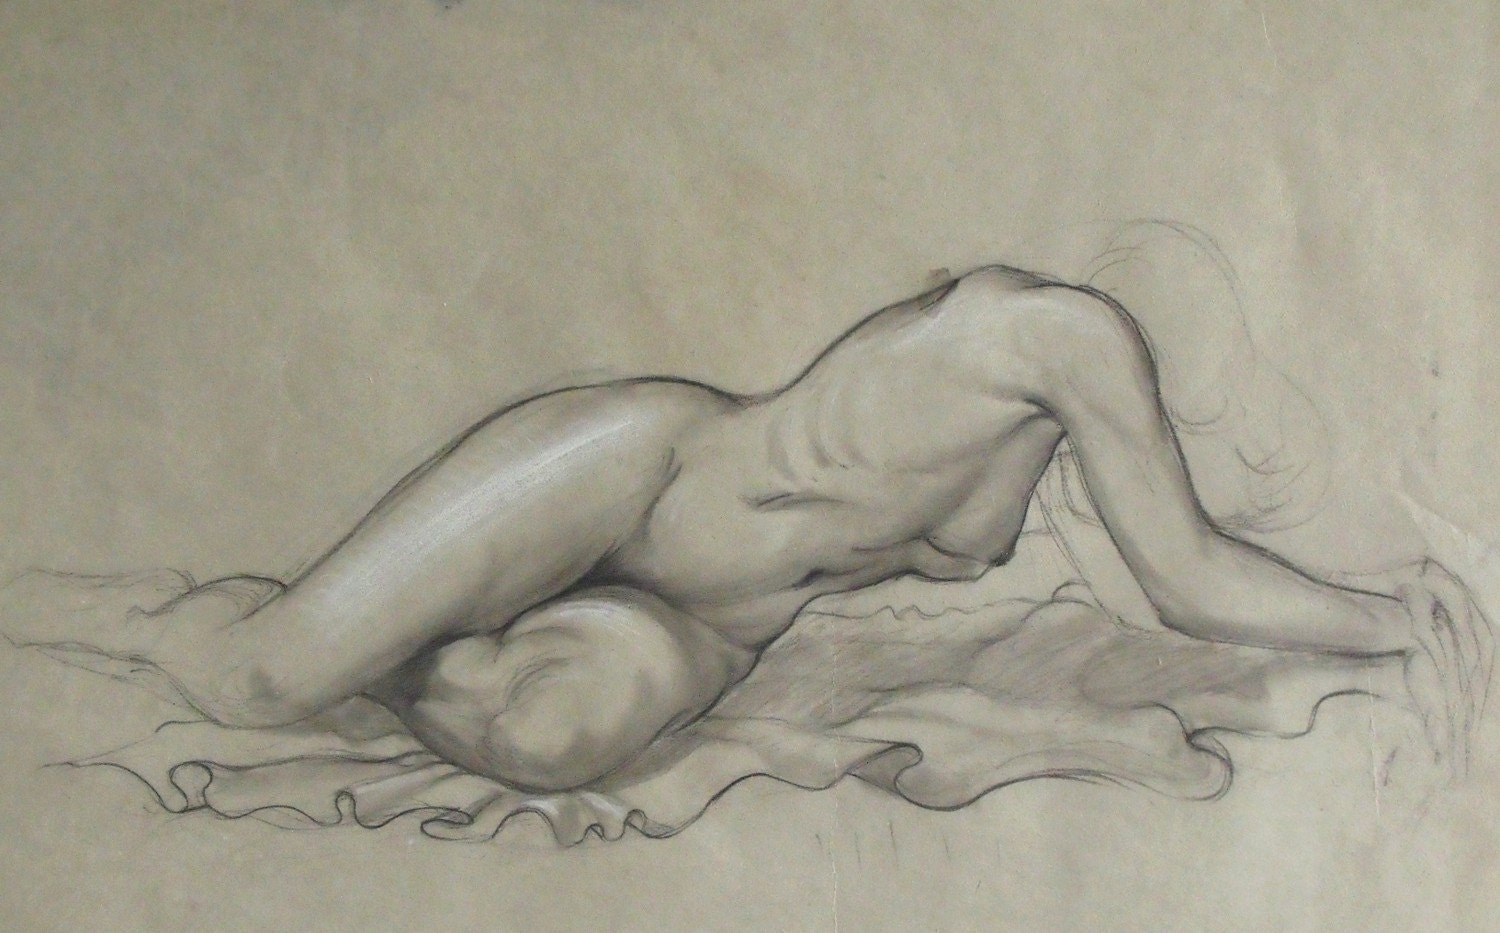 Nude fuck arts drawn by pencil hentia pic